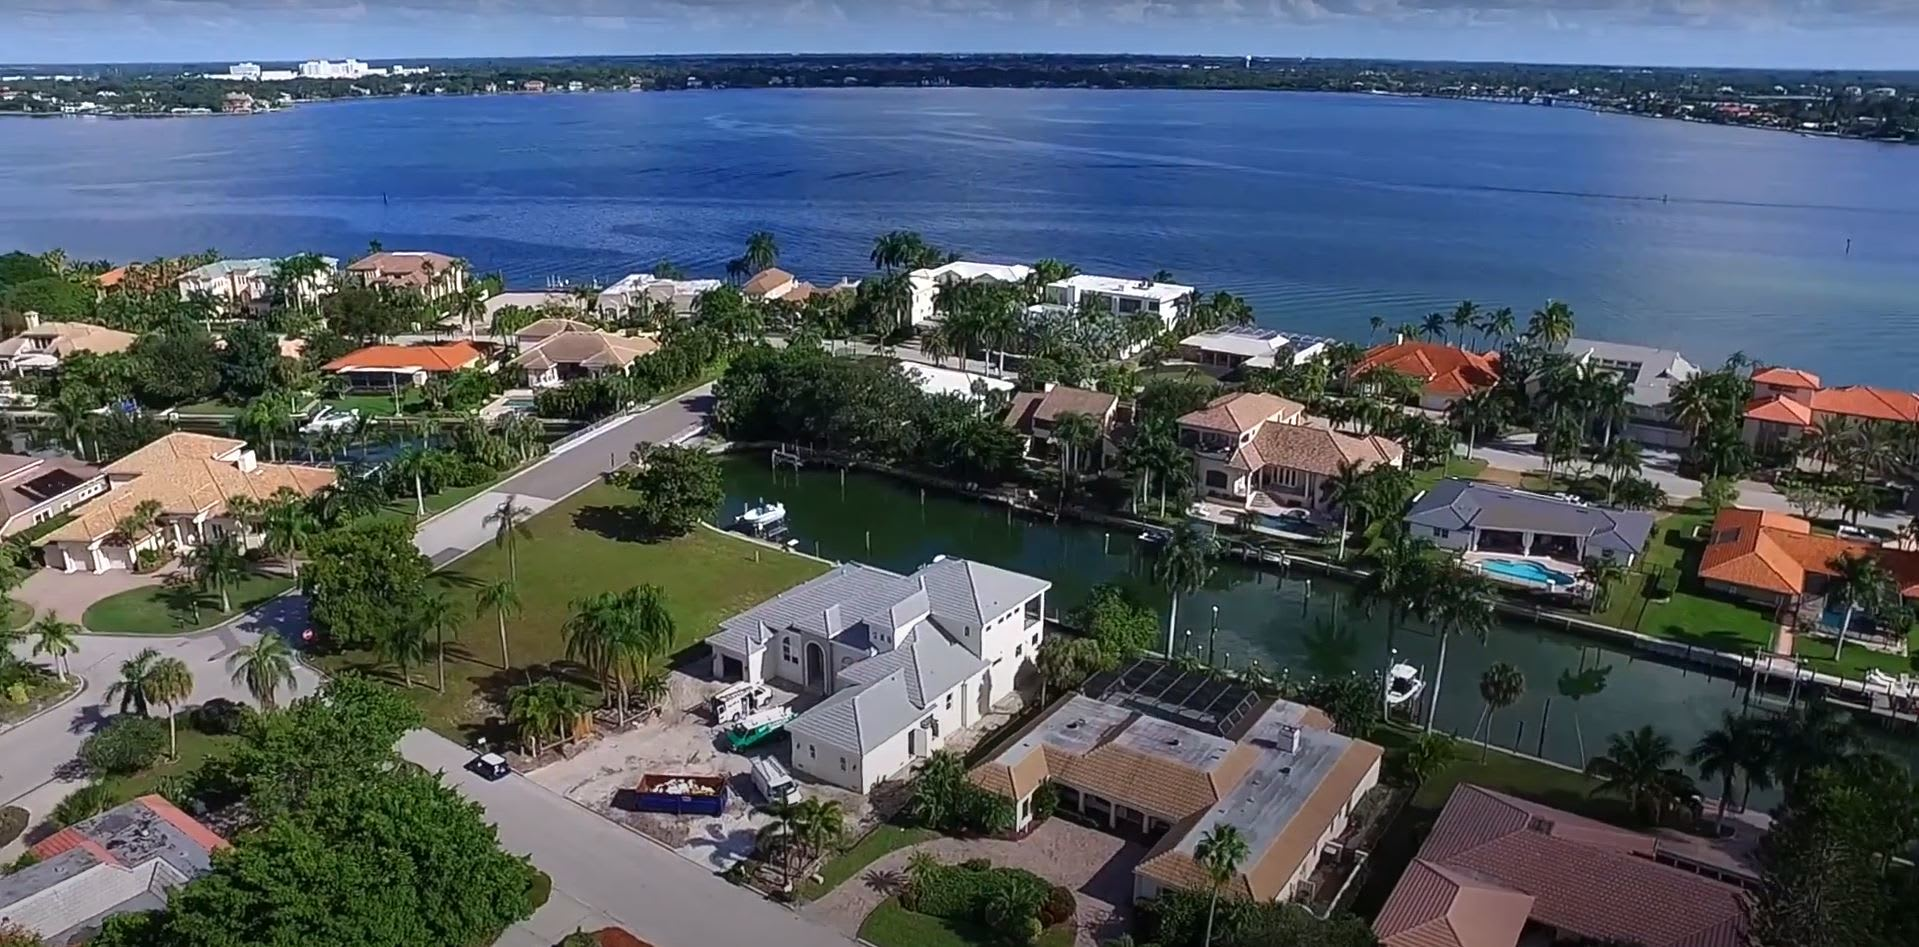 Aerial View Of 646 South Owl Drive Waterfront Home For Sale On Bird Key In Sarasota, Florida video preview